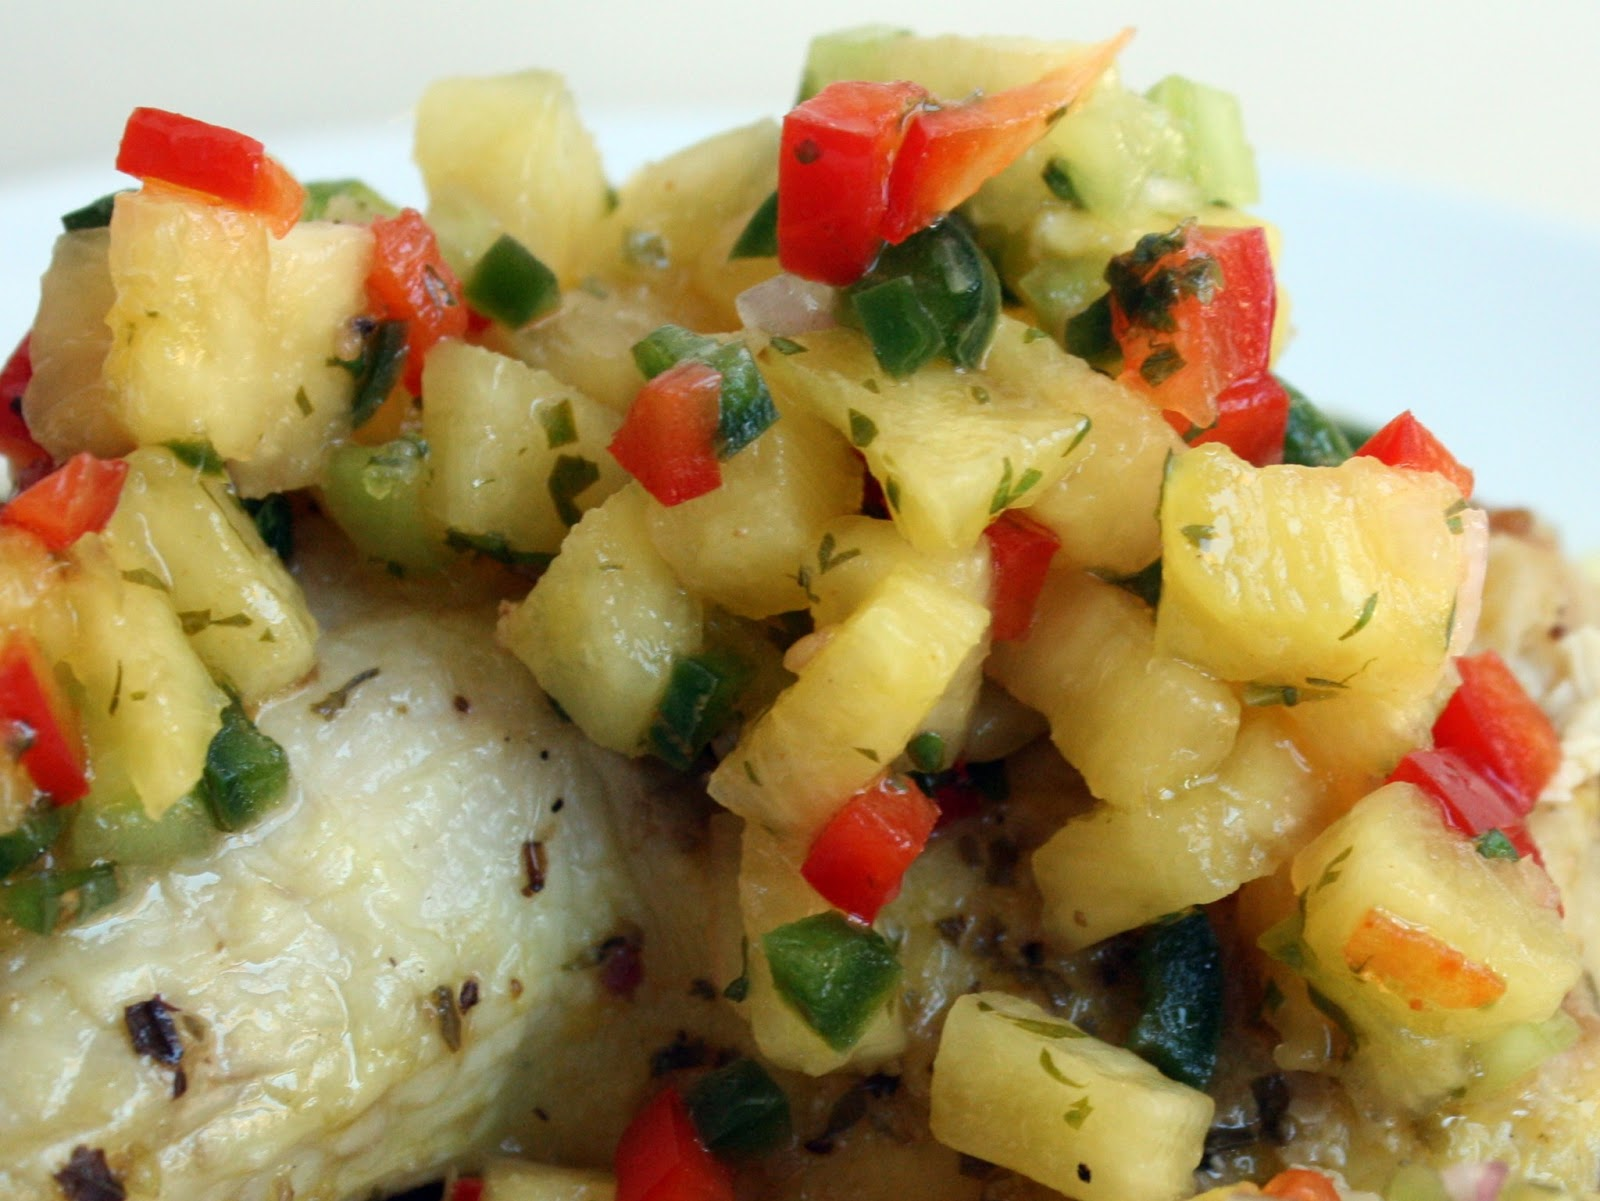 Spicy Pineapple Salsa over Chicken Quarters